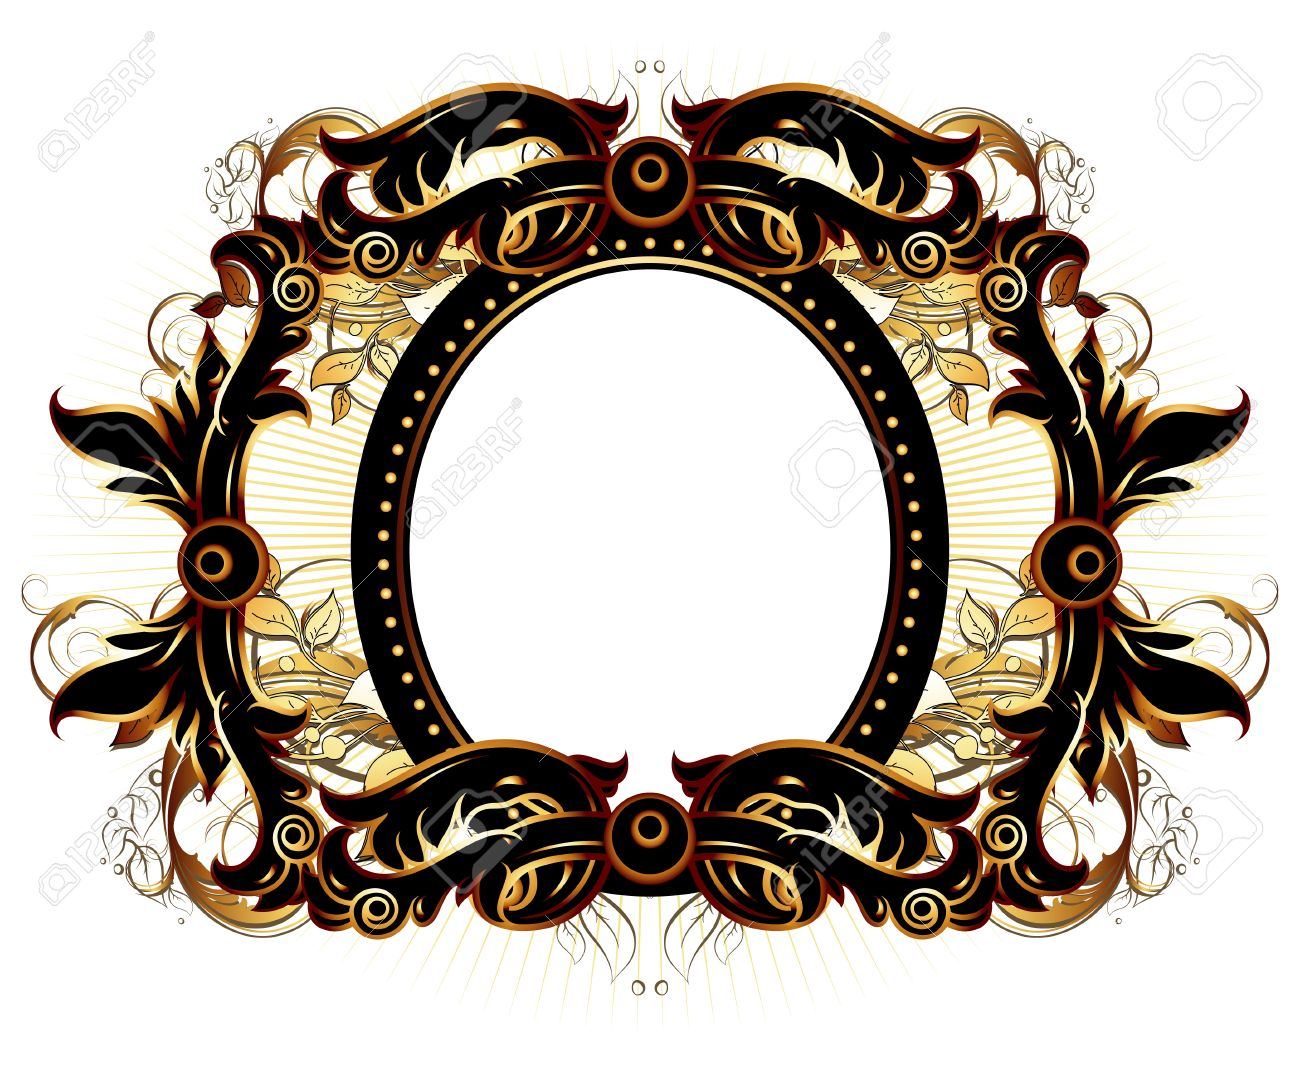 ornate frame Stock Vector - 10013969